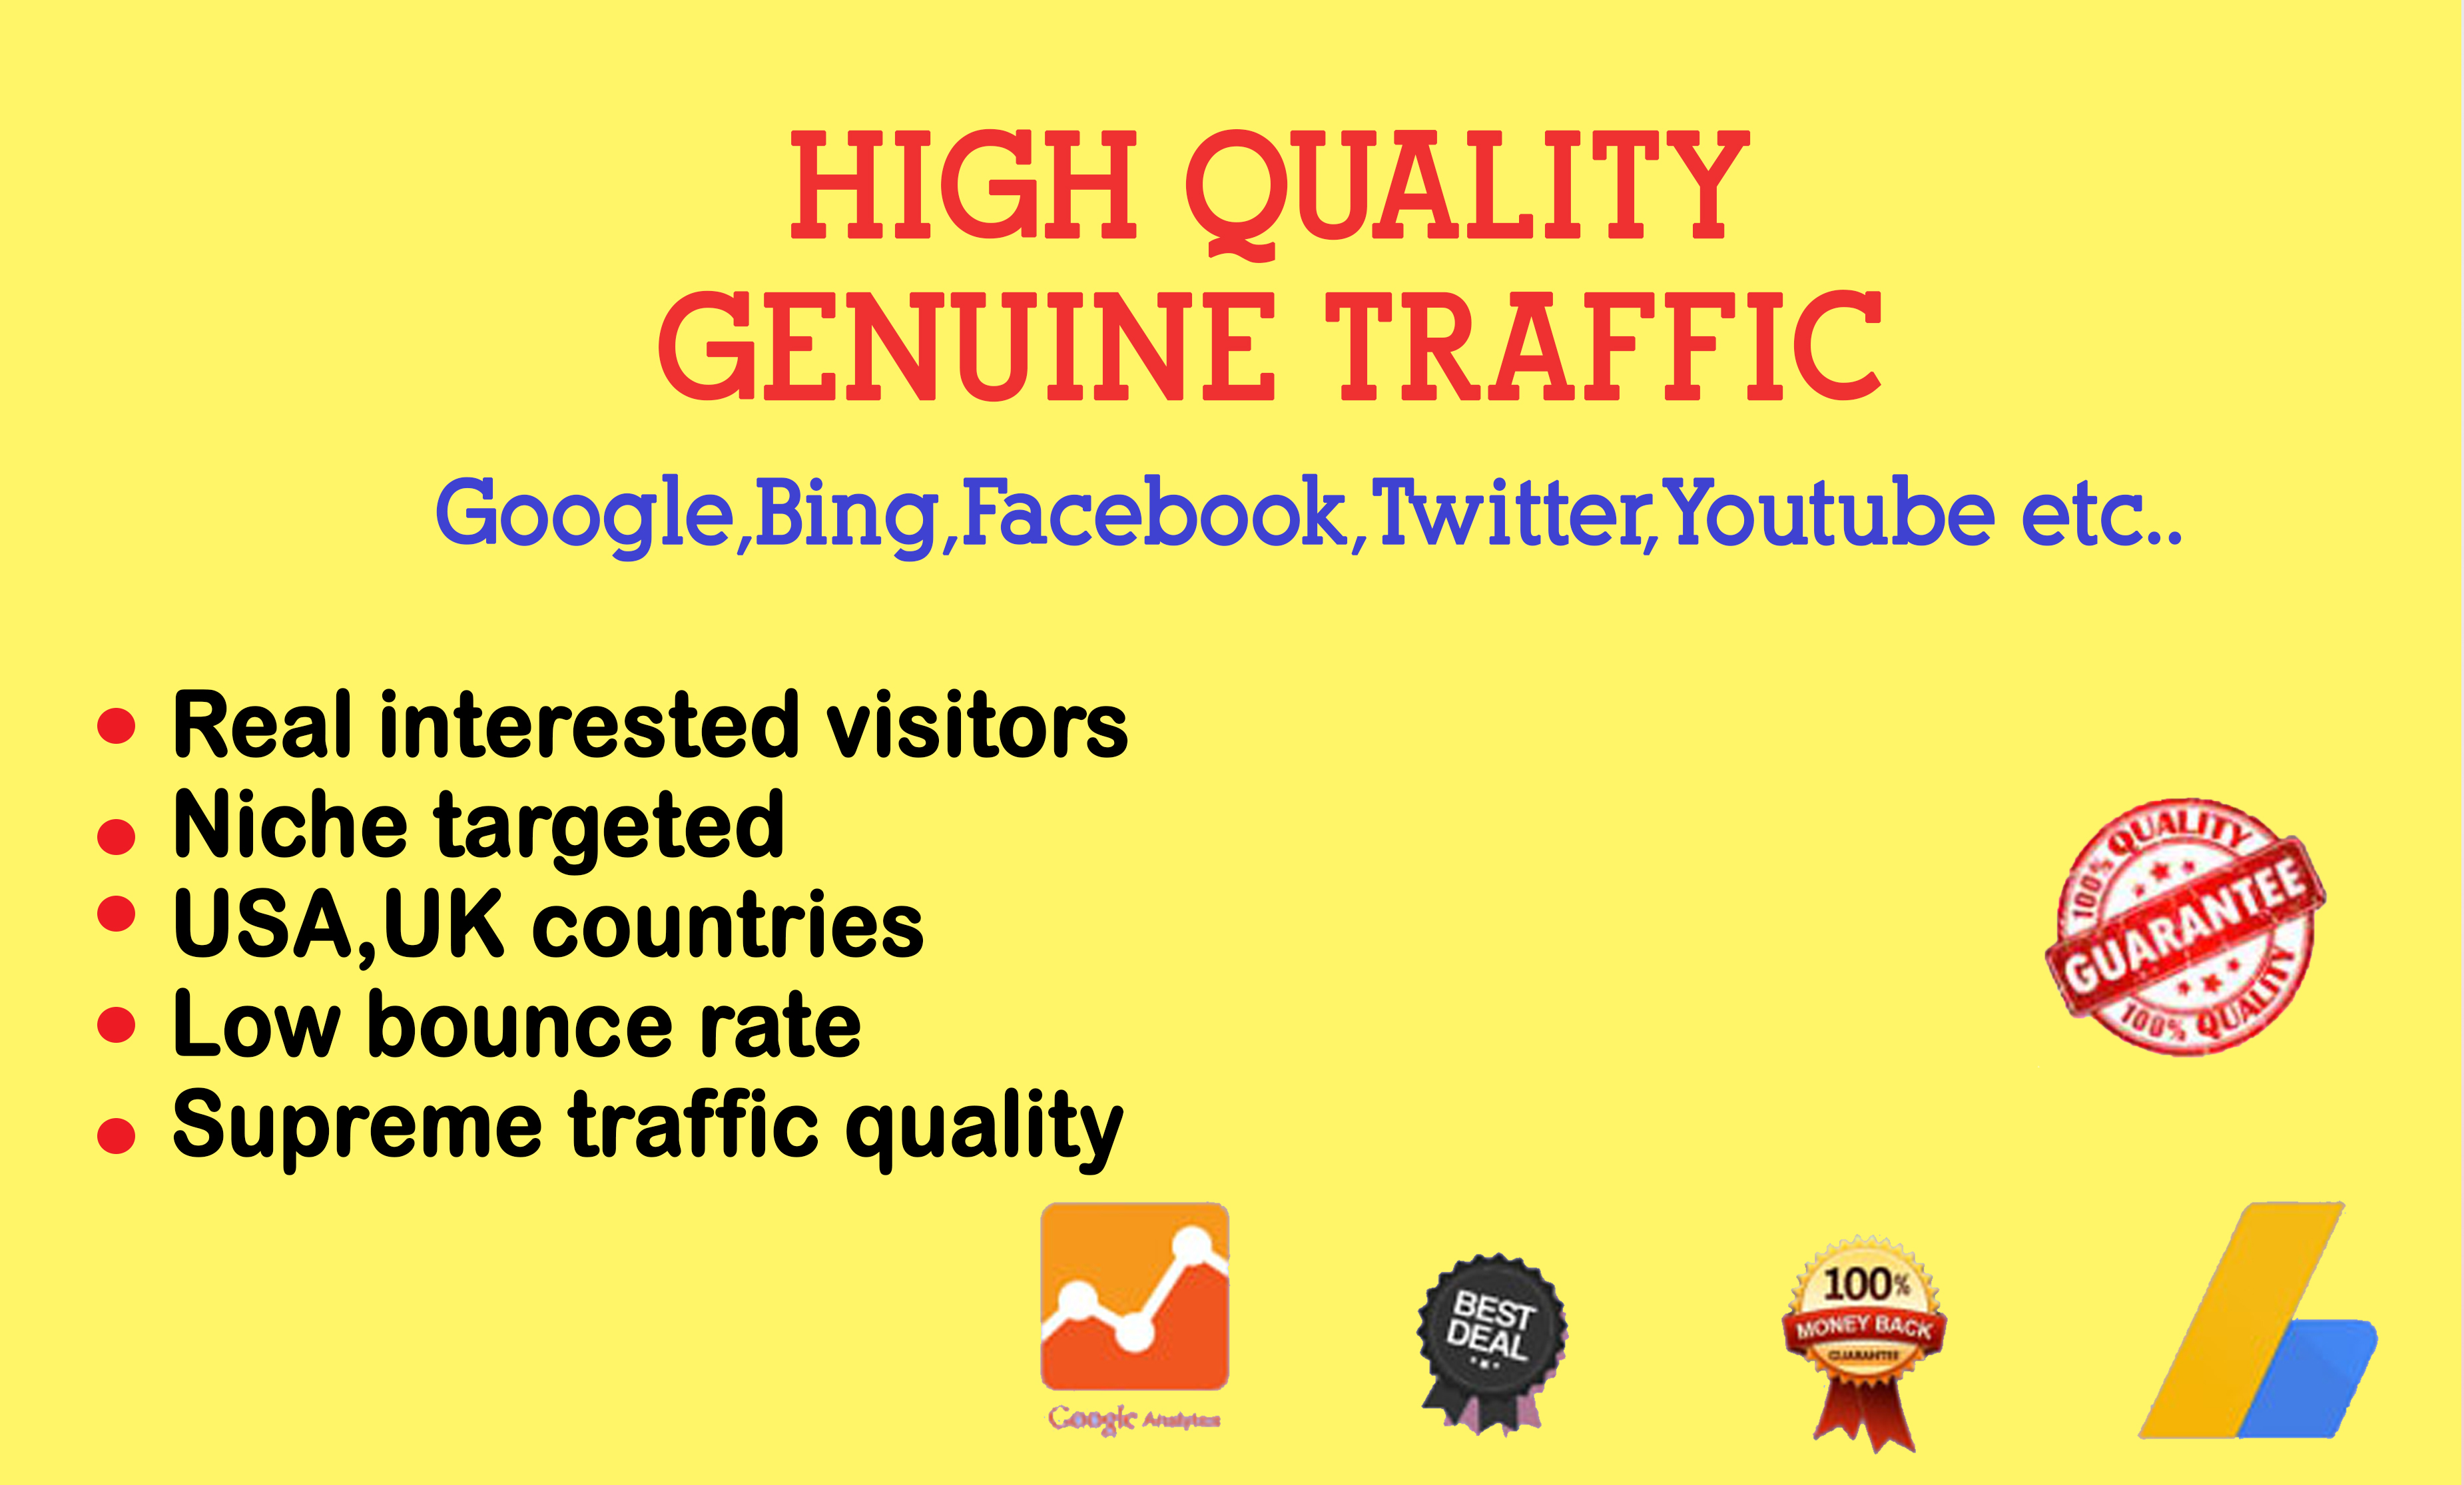 I will all counties targeted daily real visitors to your website